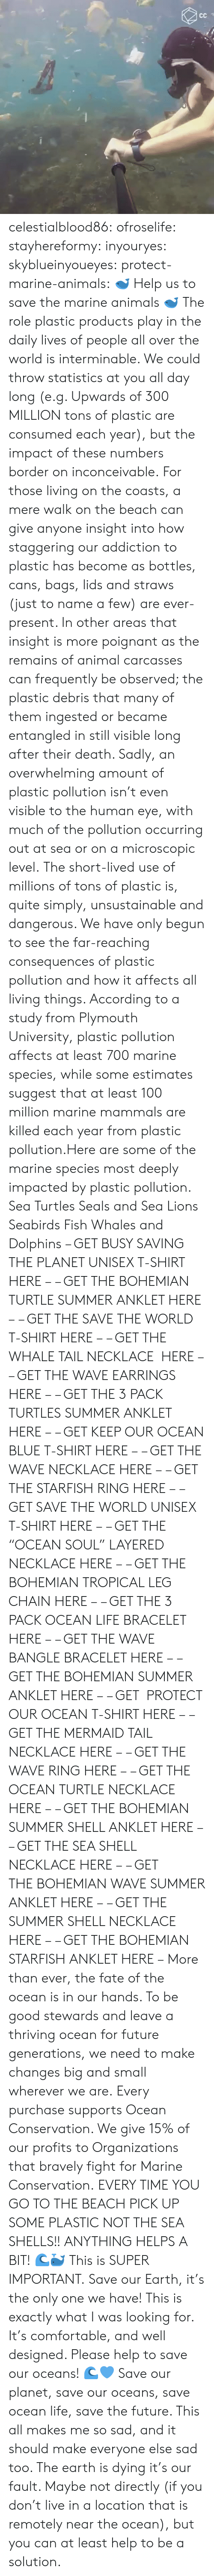 "Animals, Comfortable, and Future: celestialblood86:  ofroselife: stayhereformy:  inyouryes:  skyblueinyoueyes:  protect-marine-animals:  🐋 Help us to save the marine animals 🐋 The role plastic products play in the daily lives of people all over the world is interminable. We could throw statistics at you all day long (e.g. Upwards of 300 MILLION tons of plastic are consumed each year), but the impact of these numbers border on inconceivable. For those living on the coasts, a mere walk on the beach can give anyone insight into how staggering our addiction to plastic has become as bottles, cans, bags, lids and straws (just to name a few) are ever-present. In other areas that insight is more poignant as the remains of animal carcasses can frequently be observed; the plastic debris that many of them ingested or became entangled in still visible long after their death. Sadly, an overwhelming amount of plastic pollution isn't even visible to the human eye, with much of the pollution occurring out at sea or on a microscopic level. The short-lived use of millions of tons of plastic is, quite simply, unsustainable and dangerous. We have only begun to see the far-reaching consequences of plastic pollution and how it affects all living things. According to a study from Plymouth University, plastic pollution affects at least 700 marine species, while some estimates suggest that at least 100 million marine mammals are killed each year from plastic pollution.Here are some of the marine species most deeply impacted by plastic pollution. Sea Turtles Seals and Sea Lions Seabirds Fish Whales and Dolphins – GET BUSY SAVING THE PLANET UNISEX T-SHIRT HERE – – GET THE BOHEMIAN TURTLE SUMMER ANKLET HERE – – GET THE SAVE THE WORLD T-SHIRT HERE – – GET THE WHALE TAIL NECKLACE  HERE – – GET THE WAVE EARRINGS HERE – – GET THE 3 PACK TURTLES SUMMER ANKLET HERE – – GET KEEP OUR OCEAN BLUE T-SHIRT HERE – – GET THE WAVE NECKLACE HERE – – GET THE STARFISH RING HERE – – GET SAVE THE WORLD UNISEX T-SHIRT HERE – – GET THE ""OCEAN SOUL"" LAYERED NECKLACE HERE – – GET THE BOHEMIAN TROPICAL LEG CHAIN HERE – – GET THE 3 PACK OCEAN LIFE BRACELET HERE – – GET THE WAVE BANGLE BRACELET HERE – – GET THE BOHEMIAN SUMMER ANKLET HERE – – GET  PROTECT OUR OCEAN T-SHIRT HERE – – GET THE MERMAID TAIL NECKLACE HERE – – GET THE WAVE RING HERE – – GET THE OCEAN TURTLE NECKLACE HERE – – GET THE BOHEMIAN SUMMER SHELL ANKLET HERE – – GET THE SEA SHELL NECKLACE HERE – – GET THE BOHEMIAN WAVE SUMMER ANKLET HERE – – GET THE SUMMER SHELL NECKLACE HERE – – GET THE BOHEMIAN STARFISH ANKLET HERE – More than ever, the fate of the ocean is in our hands. To be good stewards and leave a thriving ocean for future generations, we need to make changes big and small wherever we are. Every purchase supports Ocean Conservation. We give 15% of our profits to Organizations that bravely fight for Marine Conservation.  EVERY TIME YOU GO TO THE BEACH PICK UP SOME PLASTIC NOT THE SEA SHELLS!! ANYTHING HELPS A BIT! 🌊🐳  This is SUPER IMPORTANT.  Save our Earth, it's the only one we have!  This is exactly what I was looking for. It's comfortable, and well designed. Please help to save our oceans! 🌊💙  Save our planet, save our oceans, save ocean life, save the future. This all makes me so sad, and it should make everyone else sad too. The earth is dying it's our fault. Maybe not directly (if you don't live in a location that is remotely near the ocean), but you can at least help to be a solution."